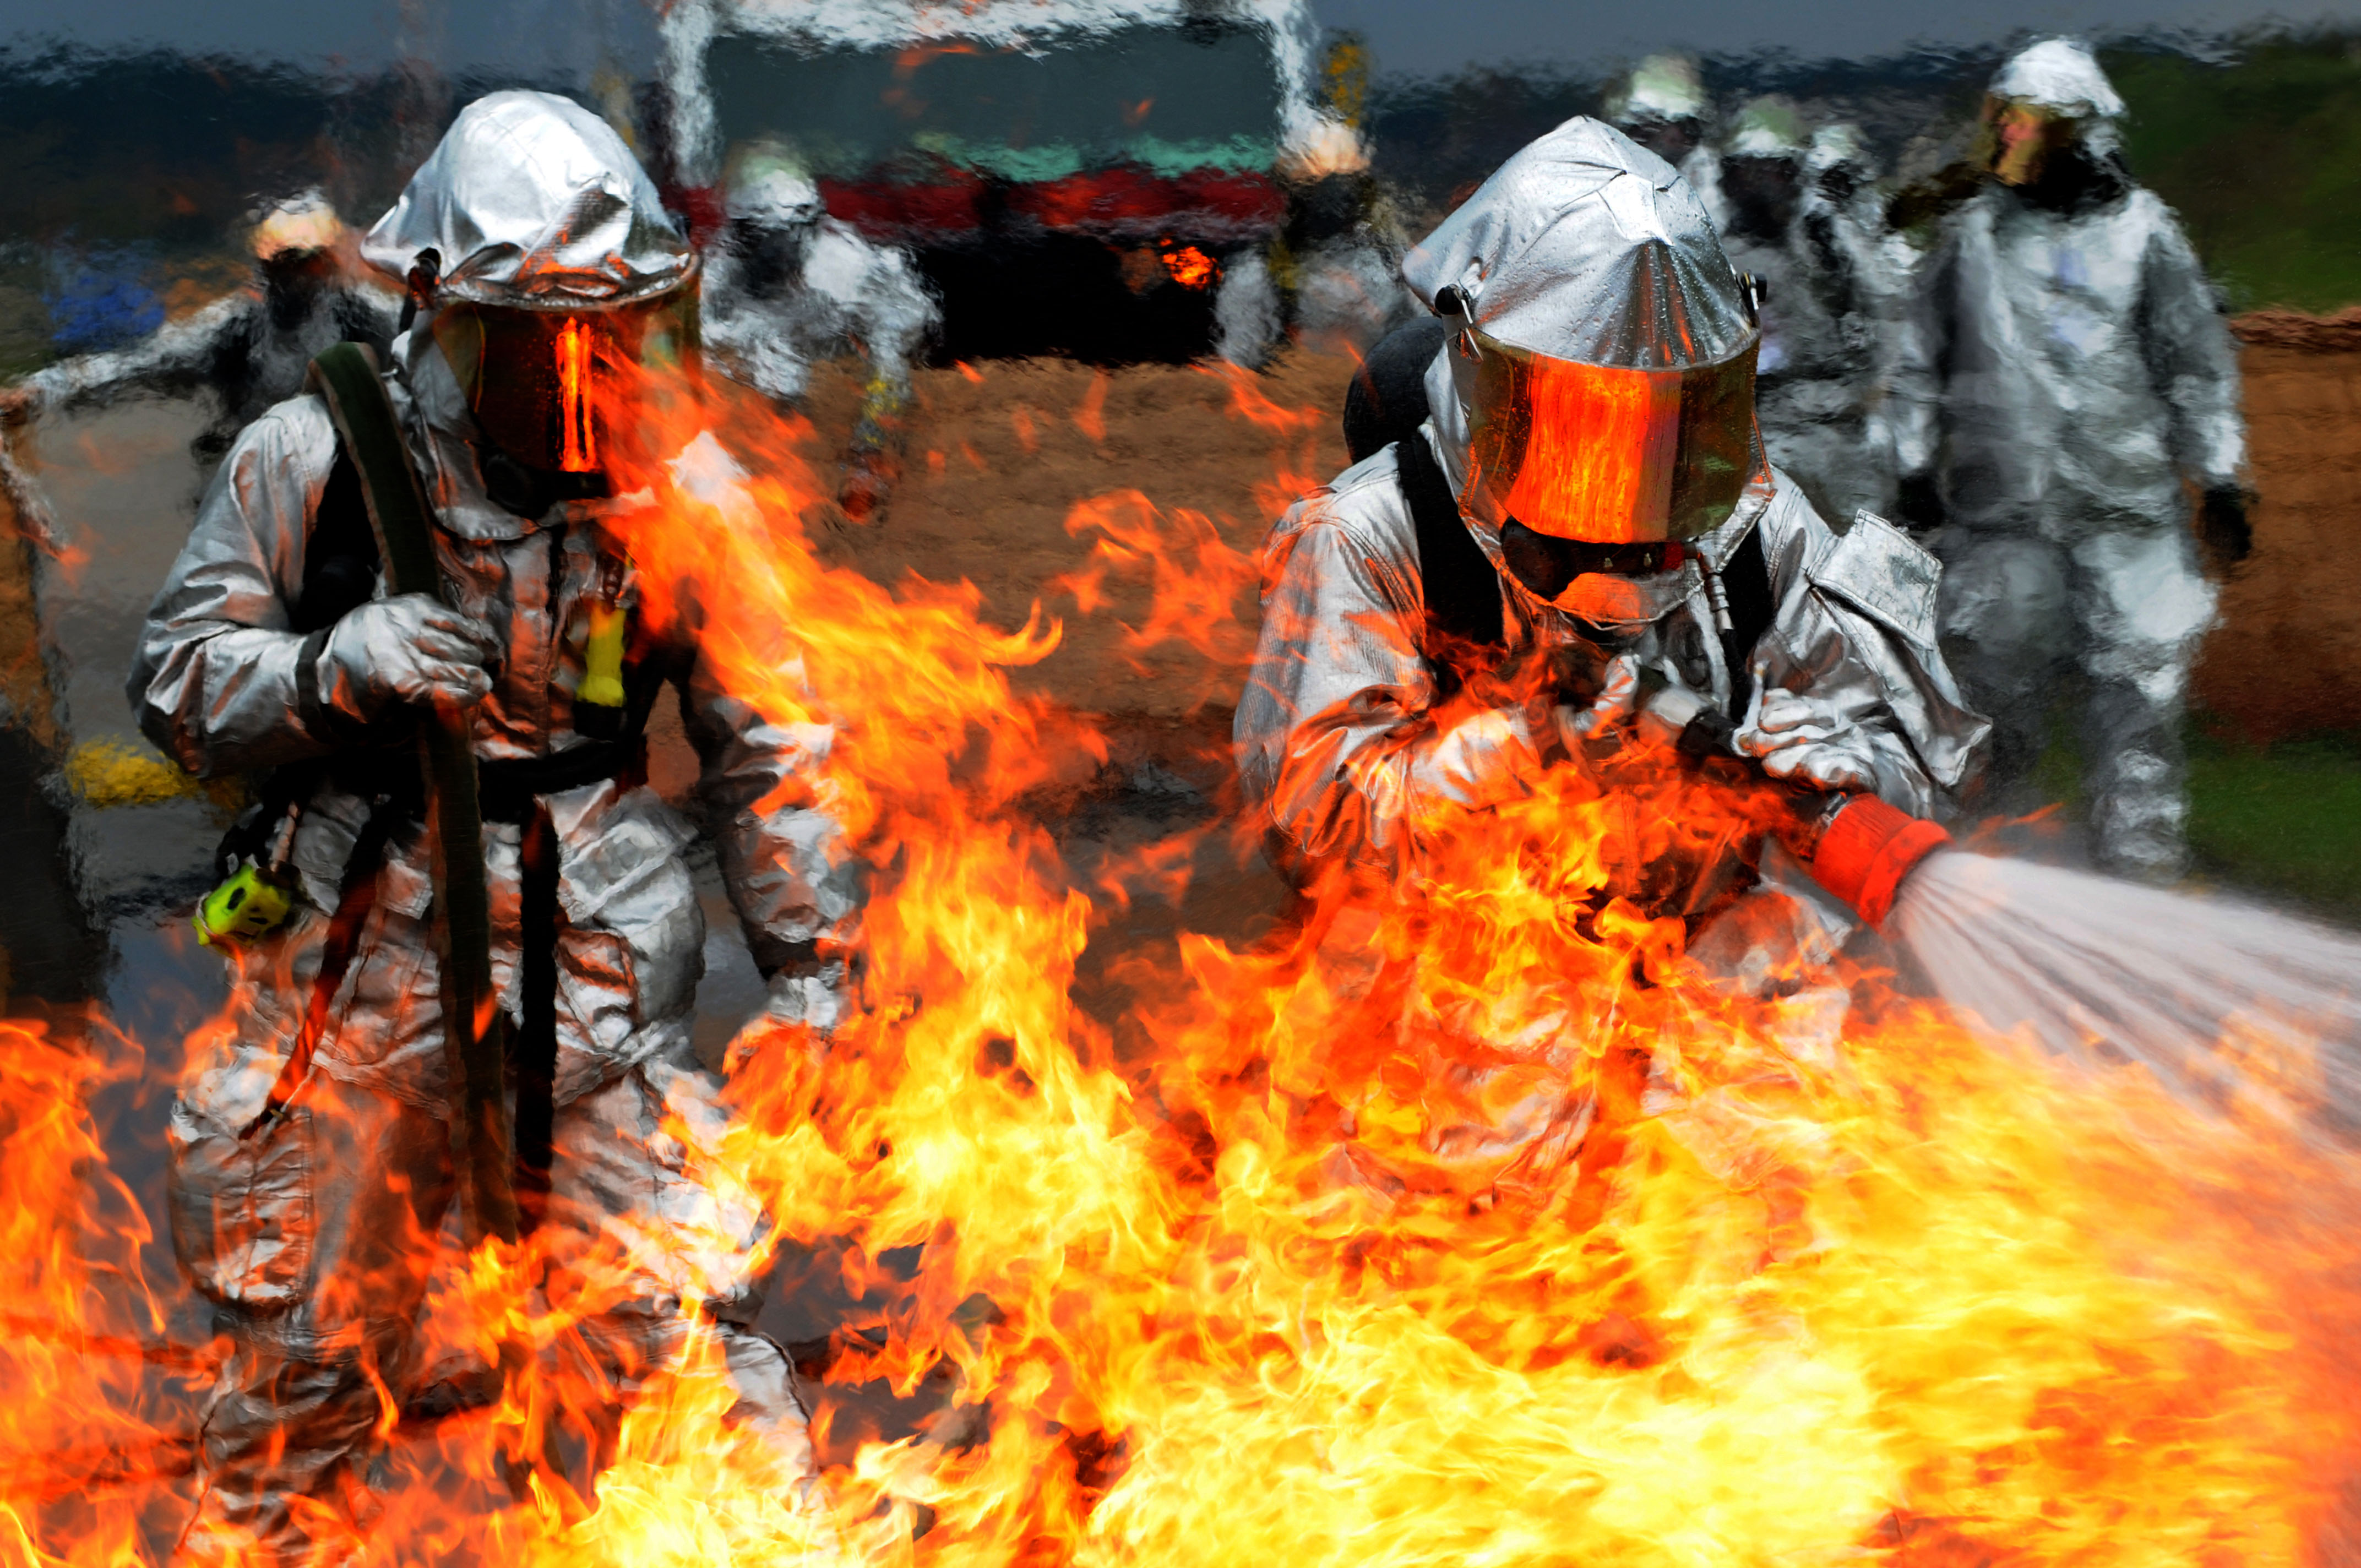 a look at the different categories of fire fighters From the top of their fire-resistant helmets to the bottom of their steel-toed boots, modern firefighters wear sophisticated materials and apparatus to keep them safe in extremely dangerous conditions.